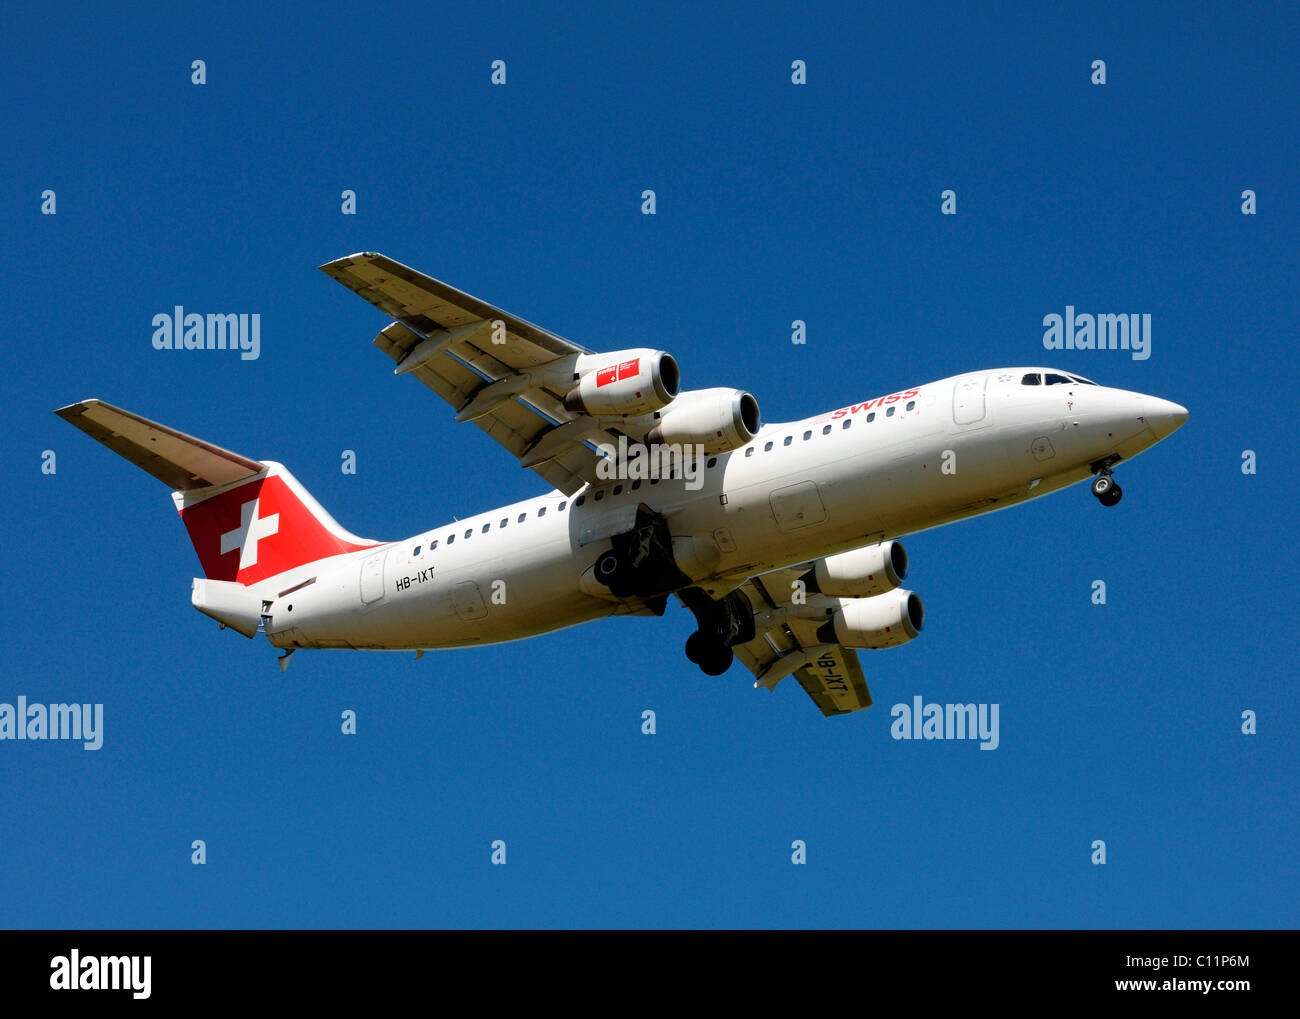 AVRO 146 RJ100 aircraft by Swiss International Air Lines - Stock Image